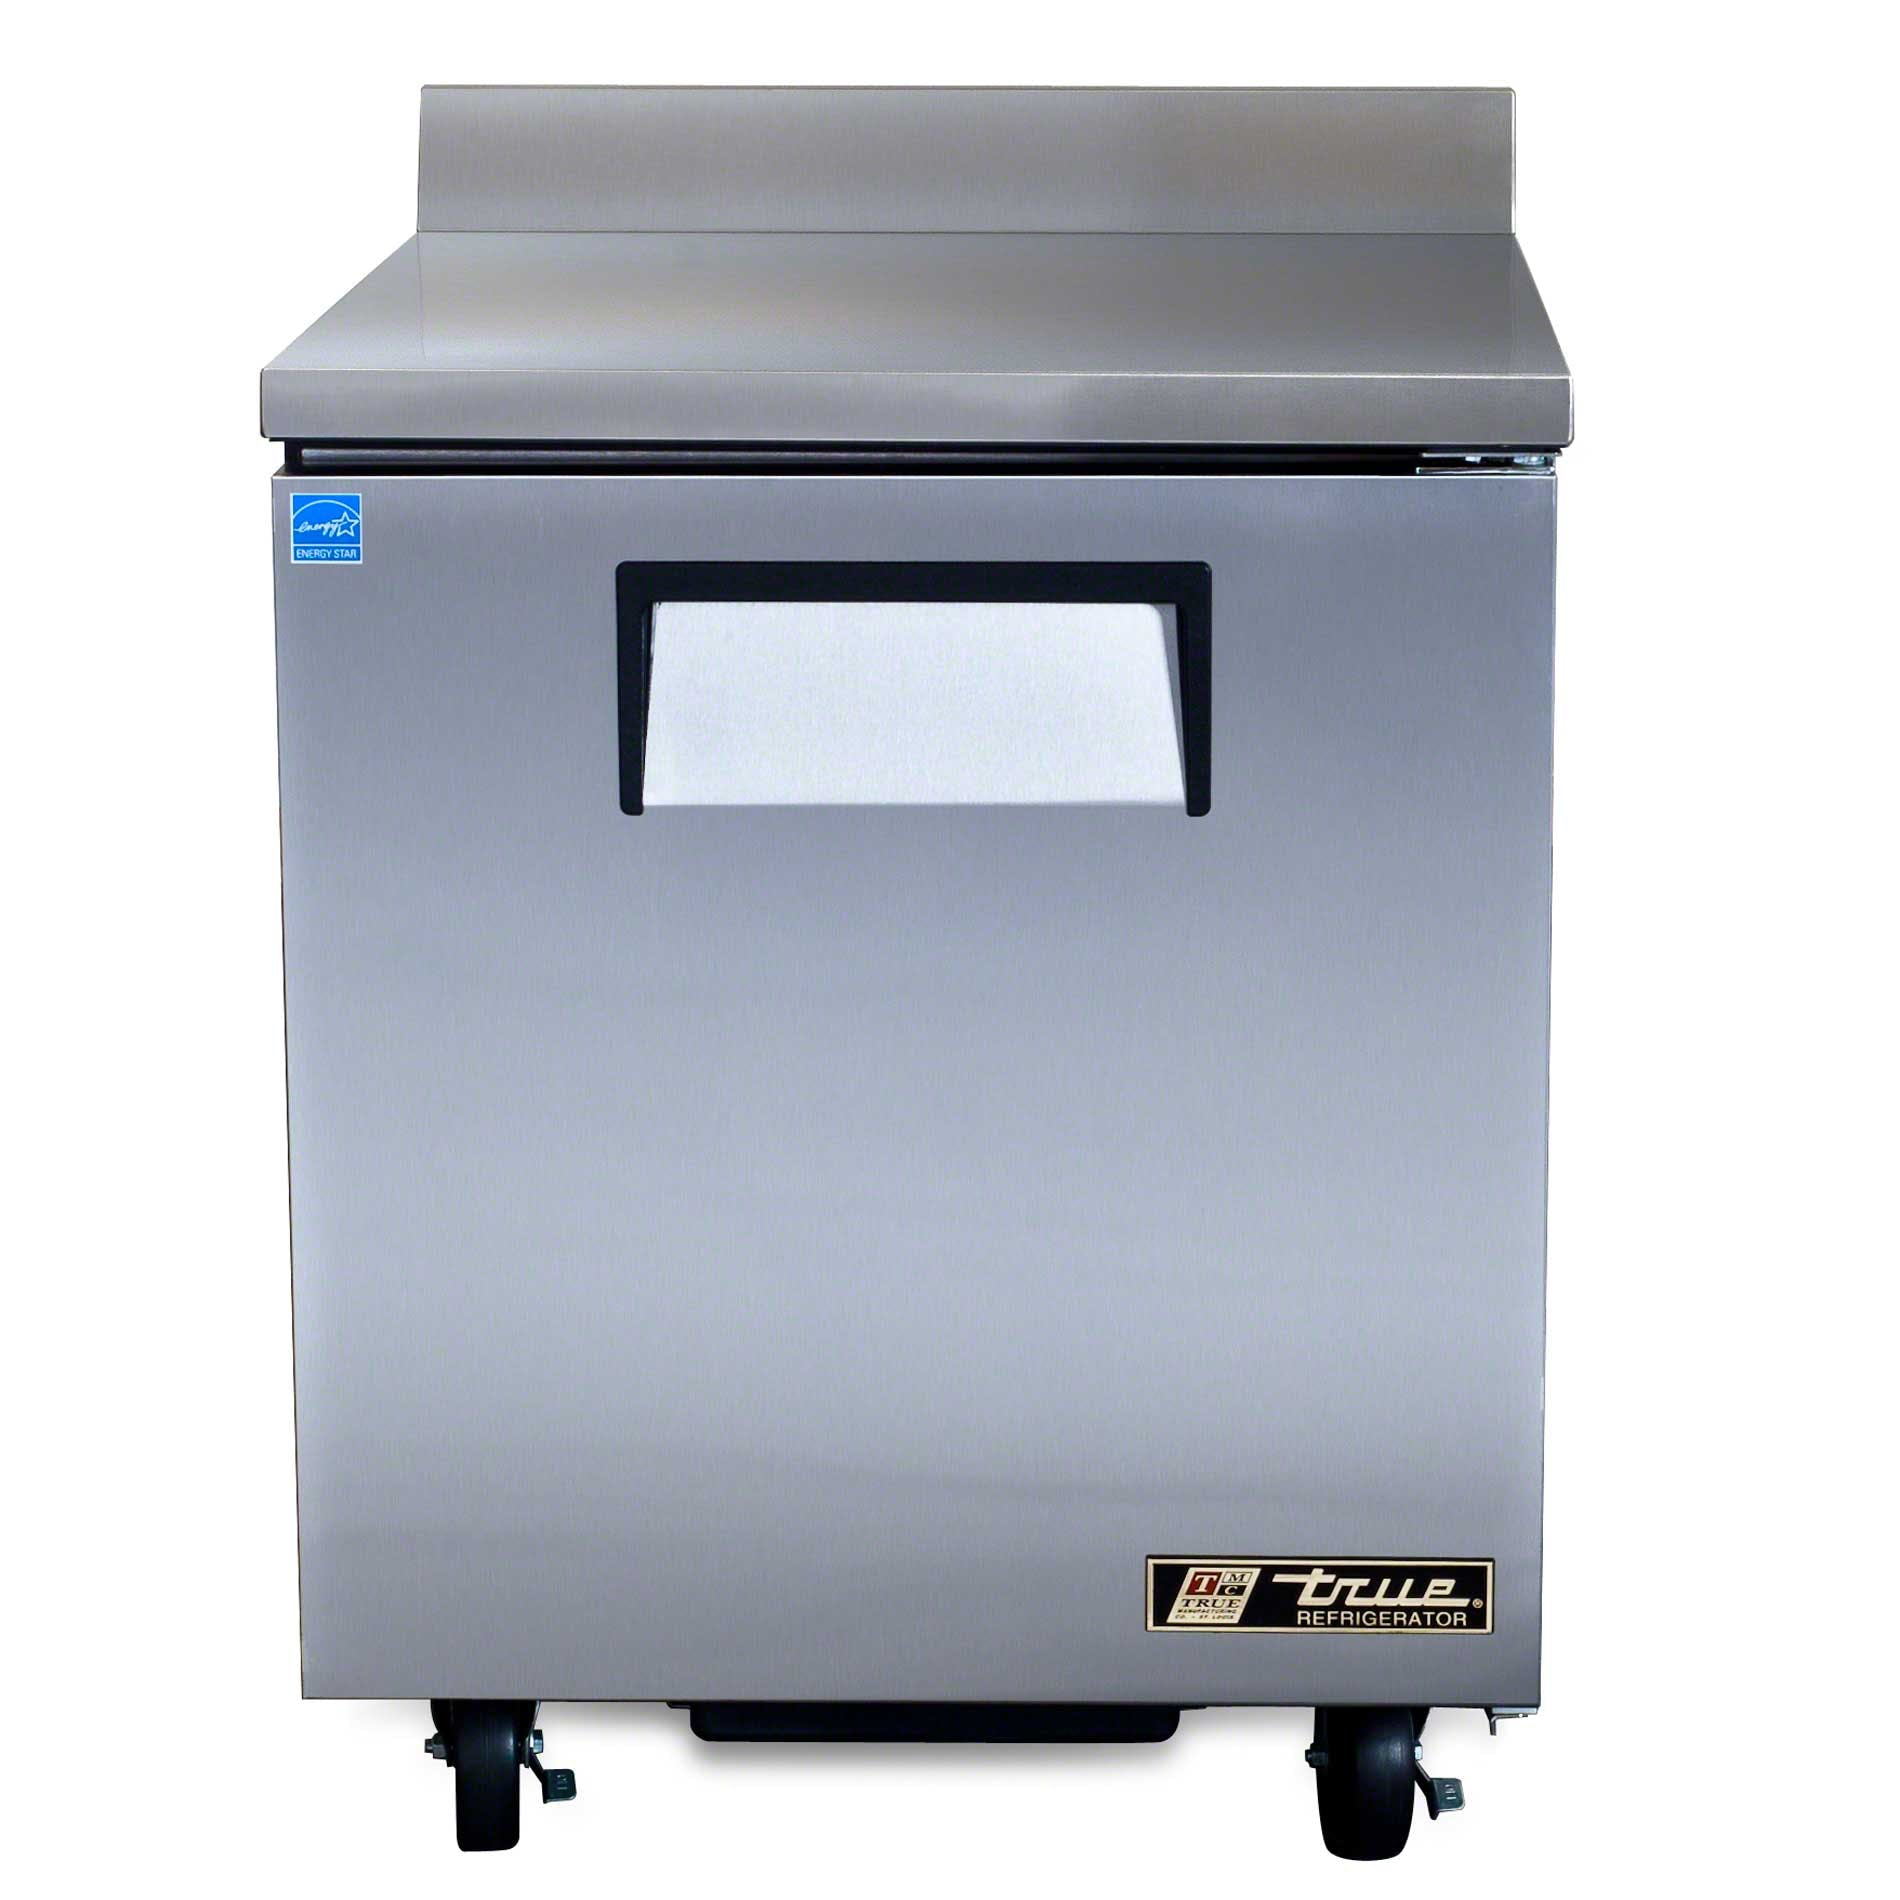 "True - TWT-27 27"" Worktop Refrigerator - sold by Food Service Warehouse"